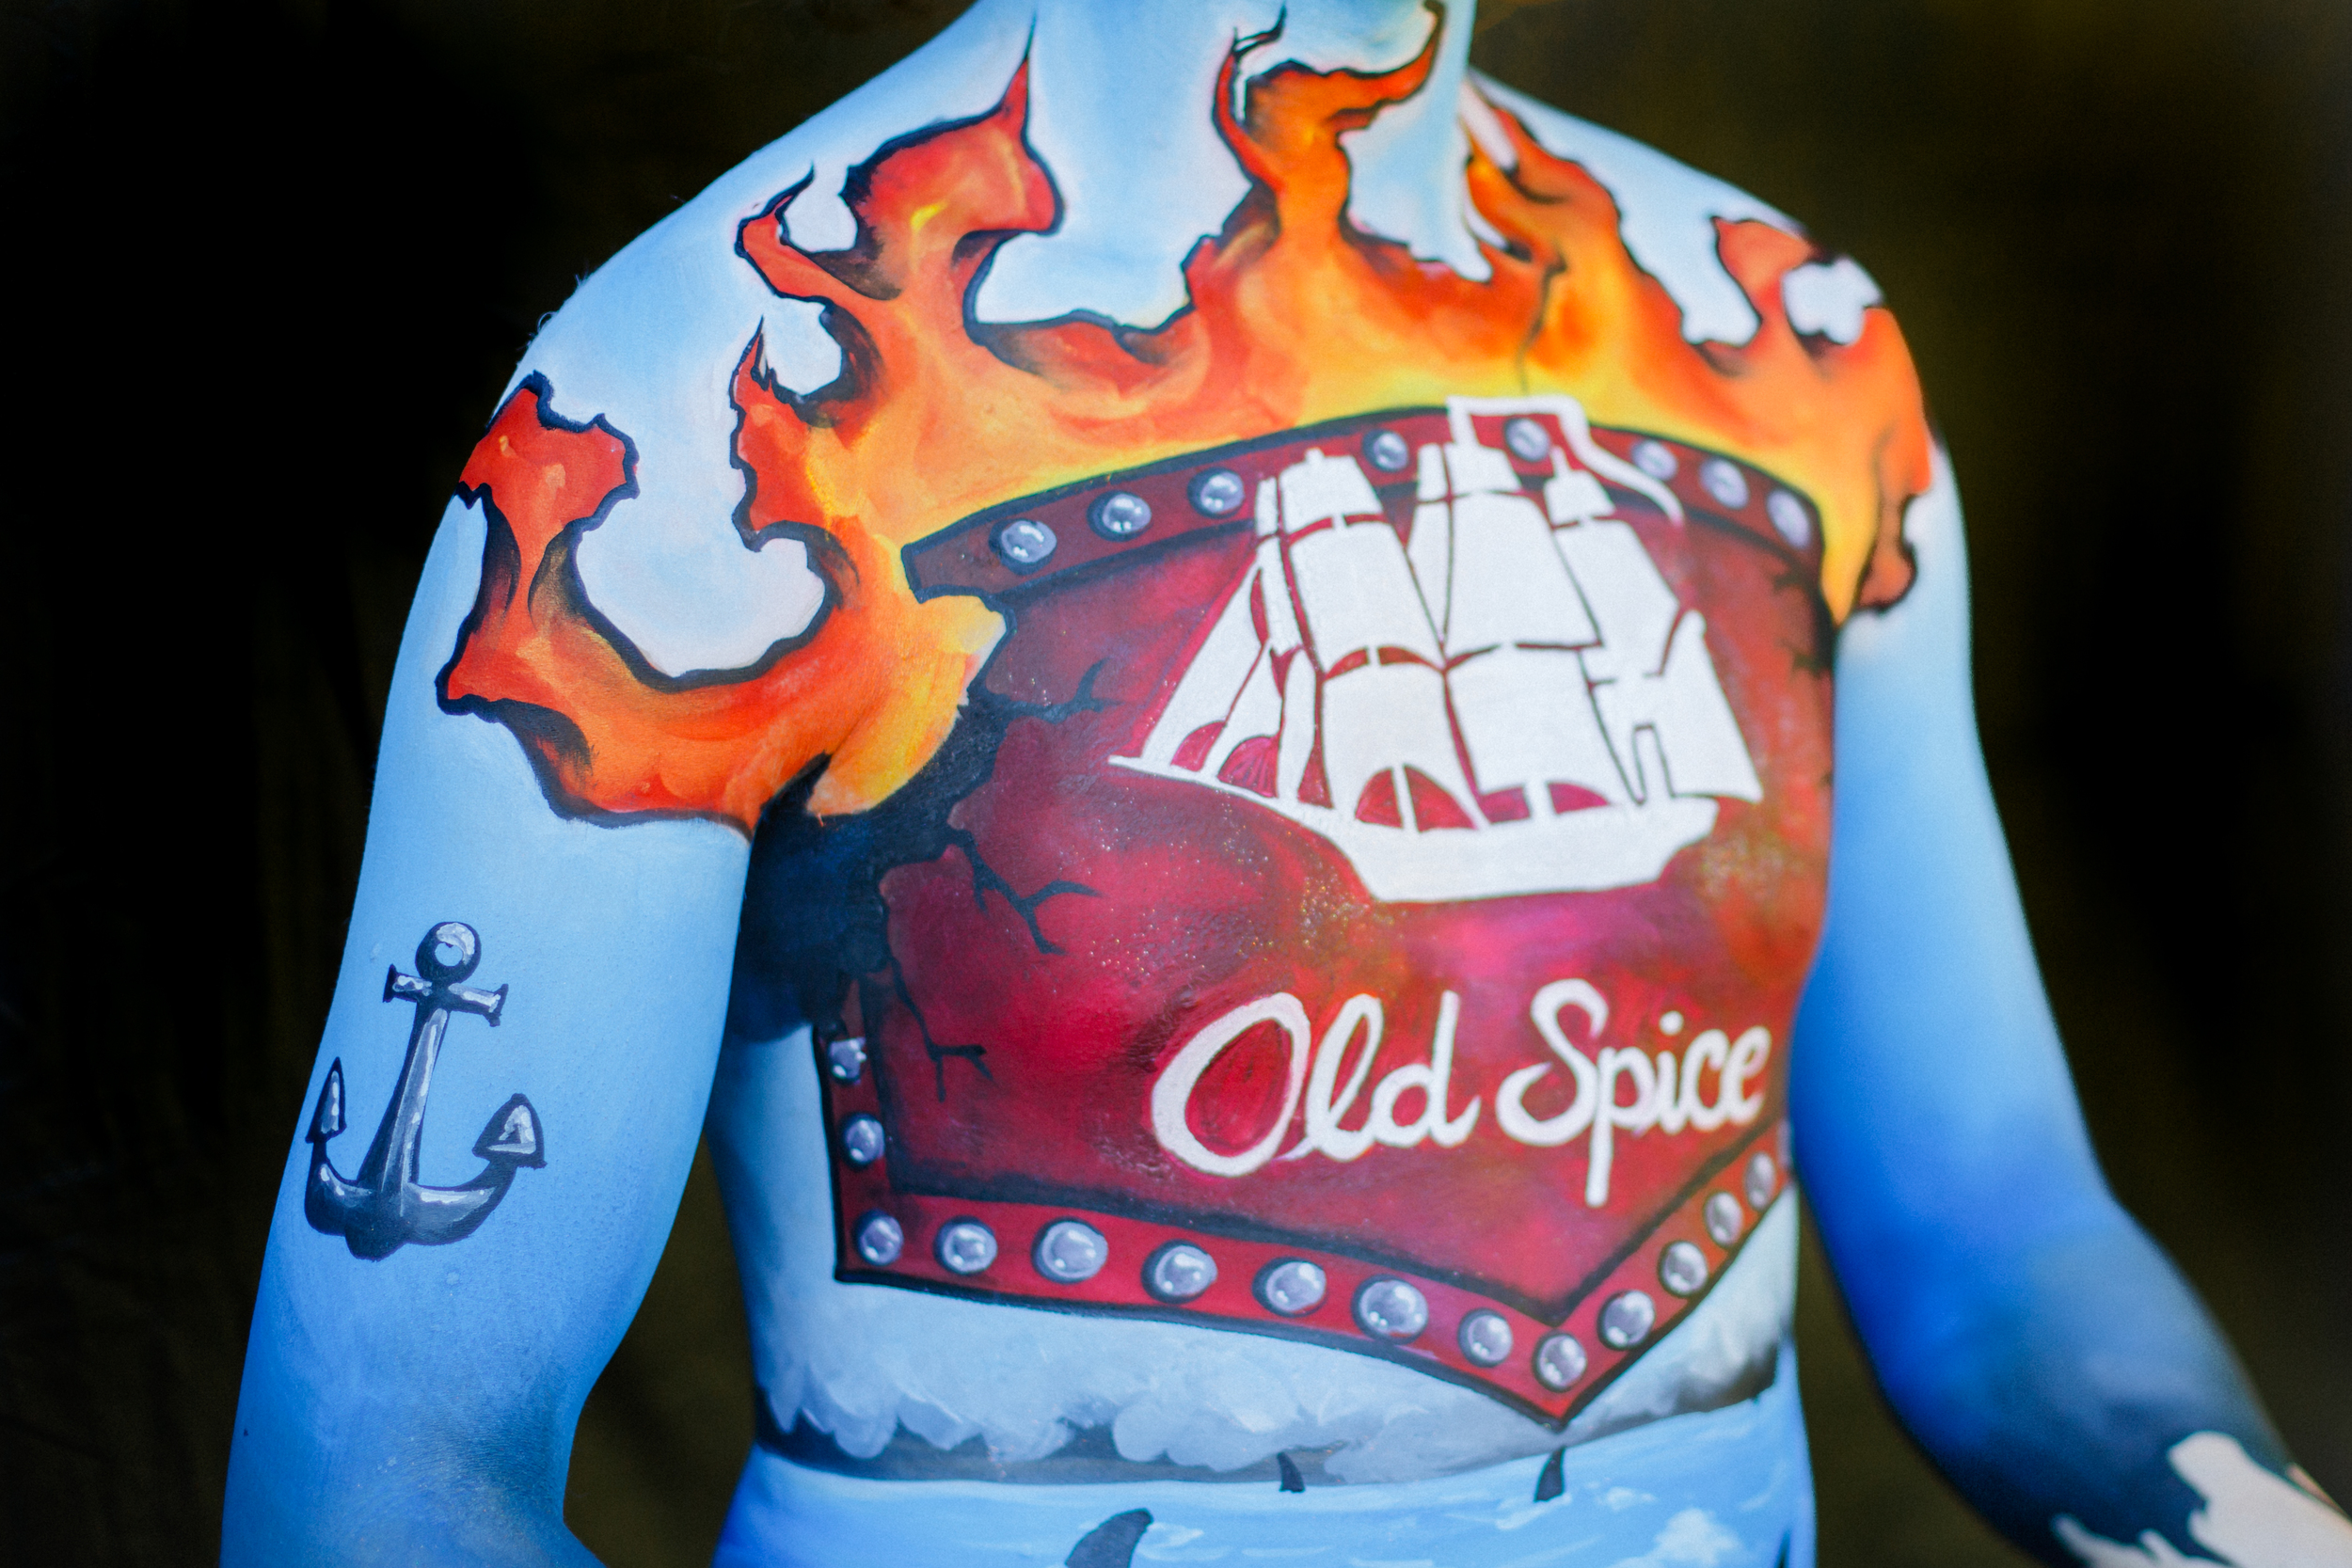 Details of body painting inspired by Old Spice Lion Pride features and anchor, ship, and flames